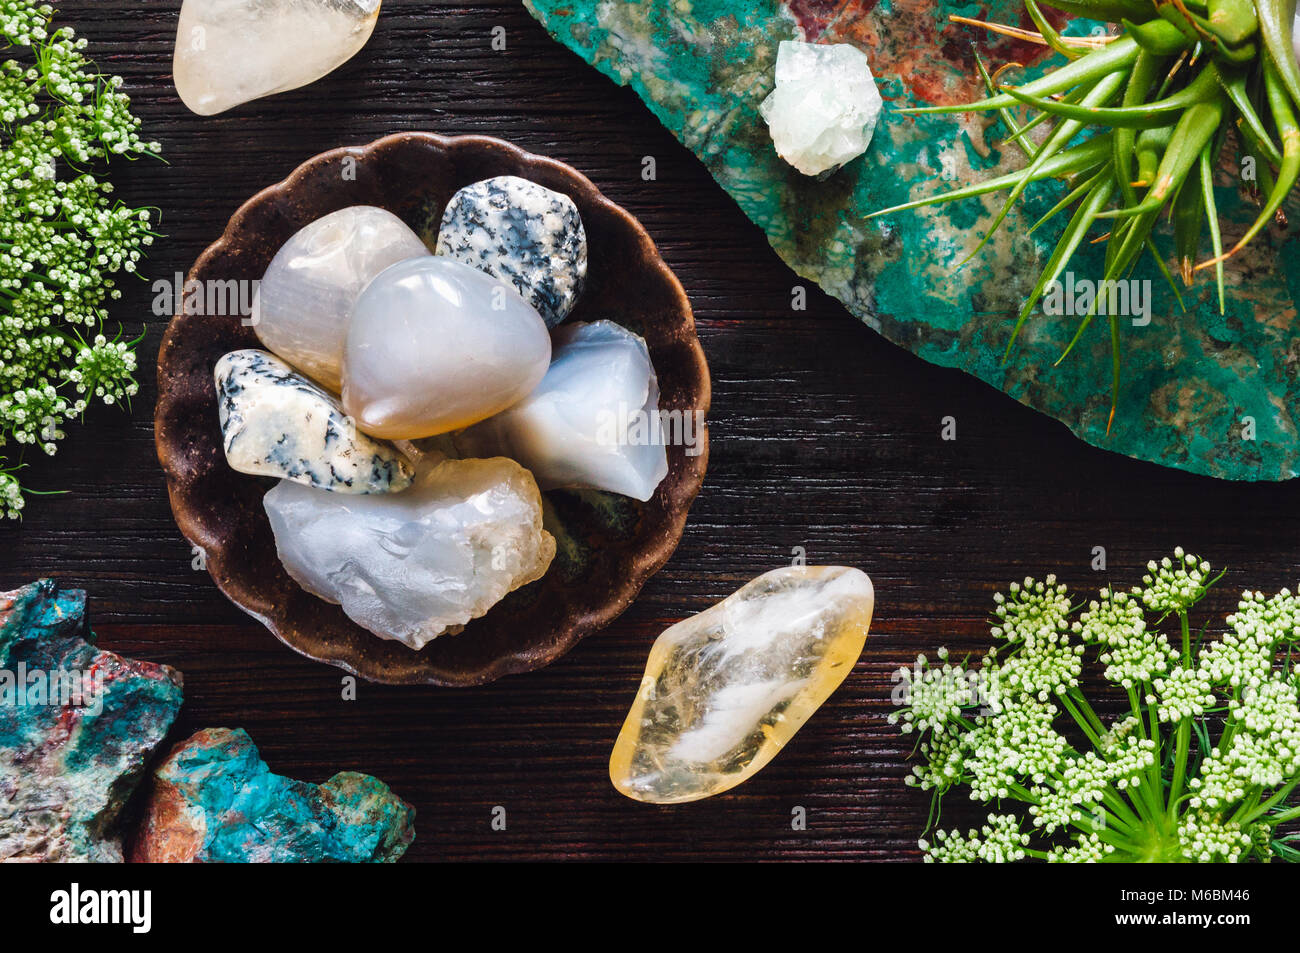 Stones of Gemini, including Agate, Chalcedony, Apophyllite, Citrine and Chrysocolla - Stock Image